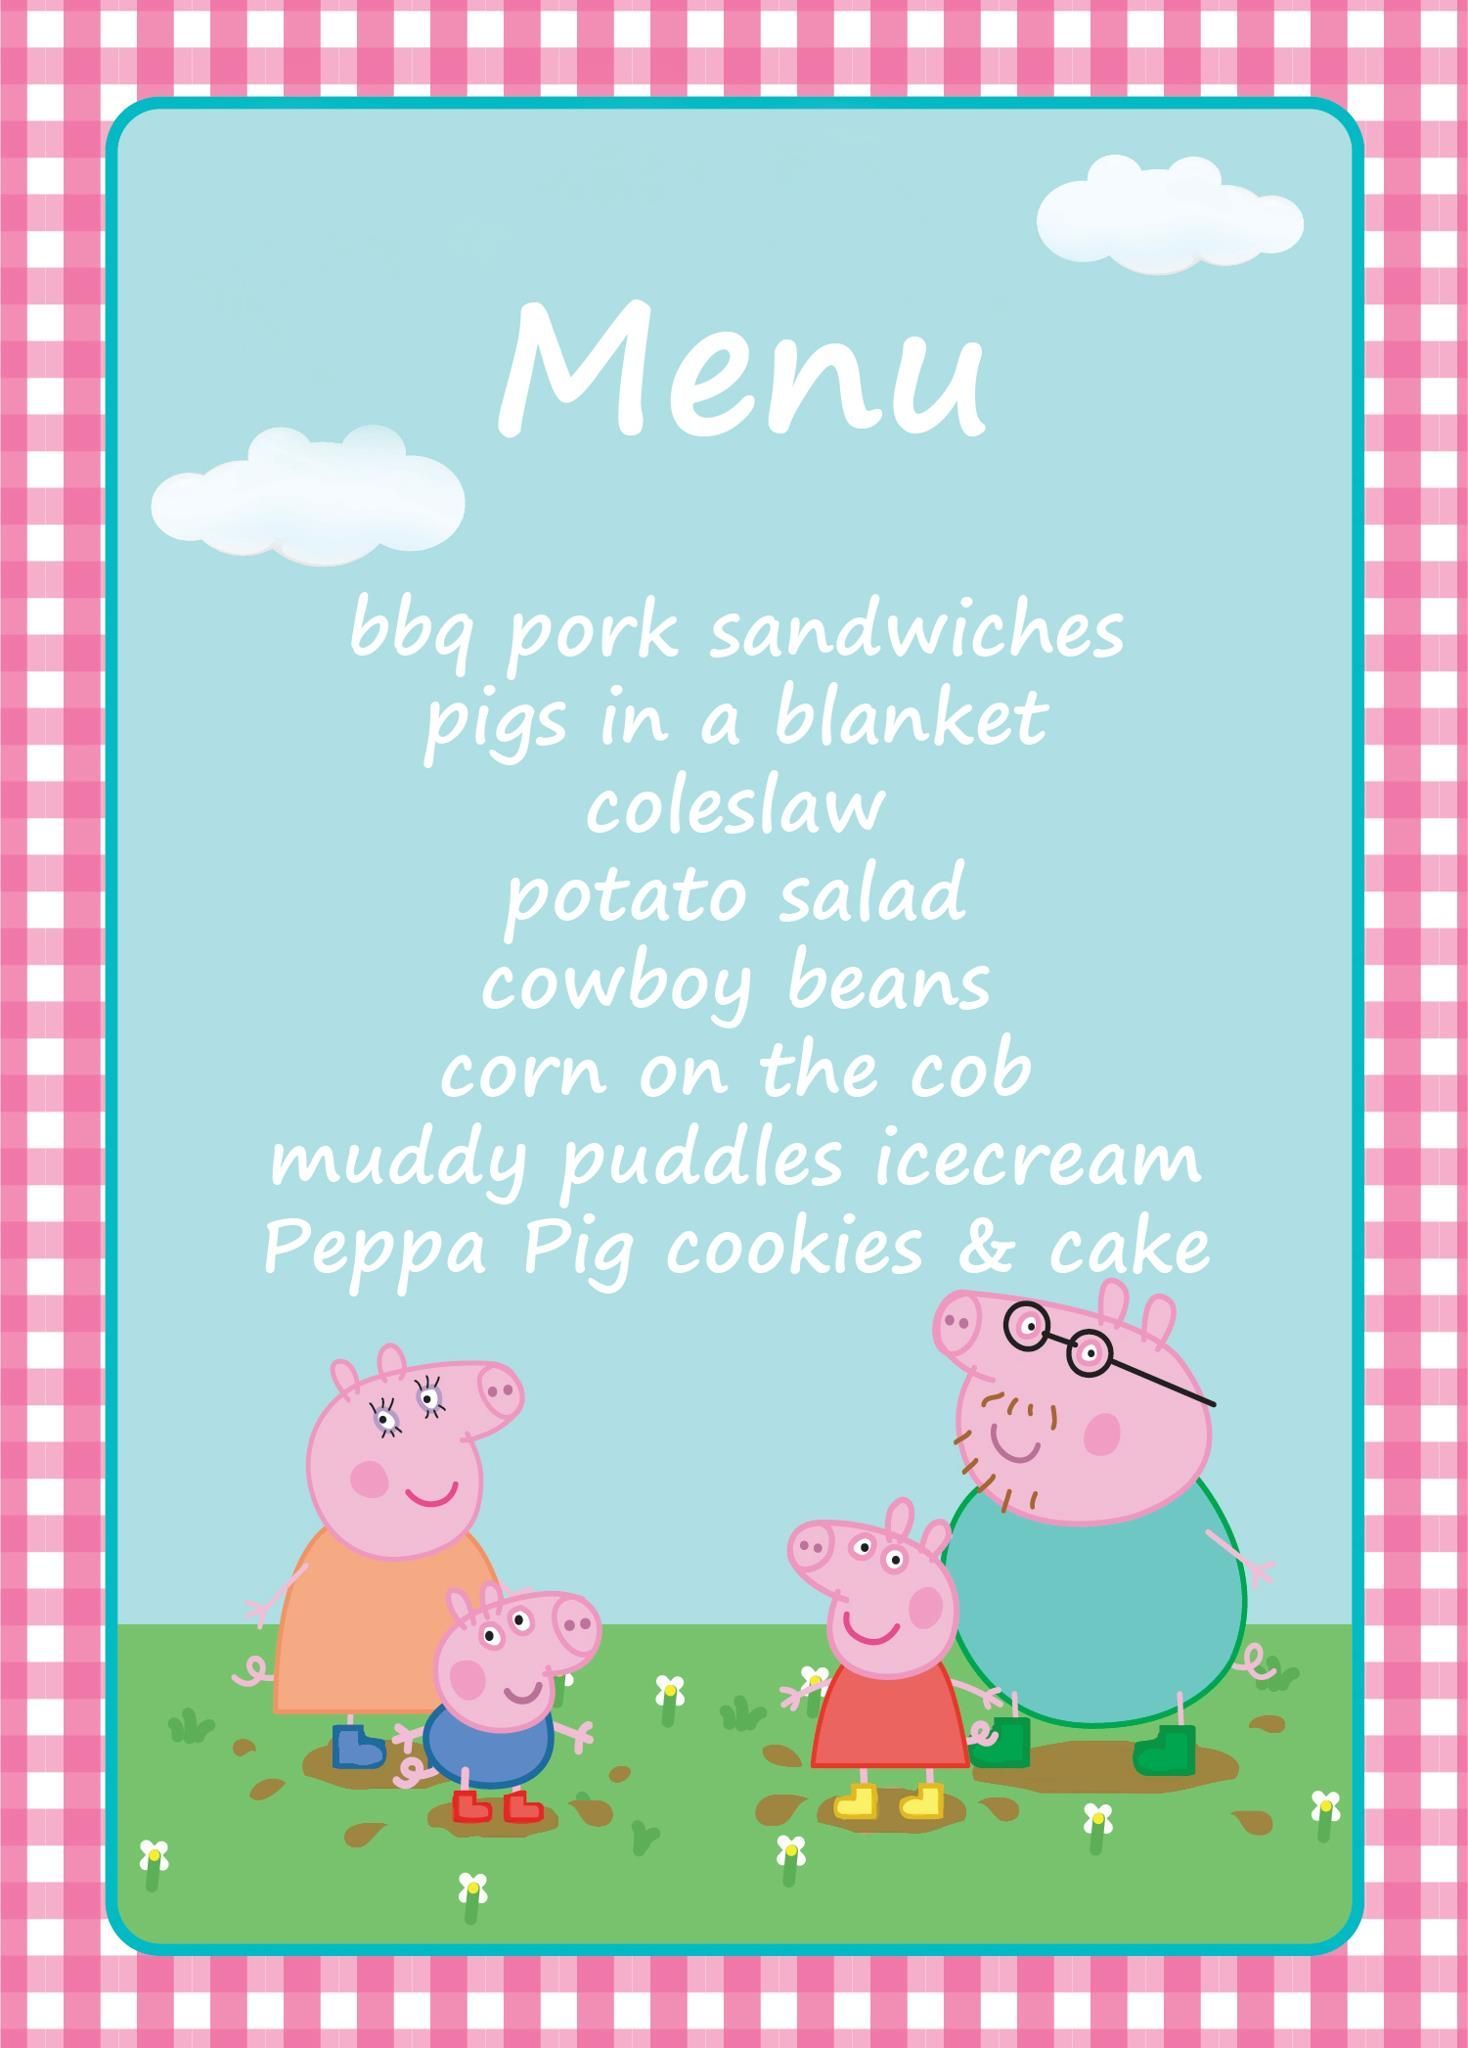 Peppa pig templates cake ideas and designs page 2 for Peppa pig cake template free